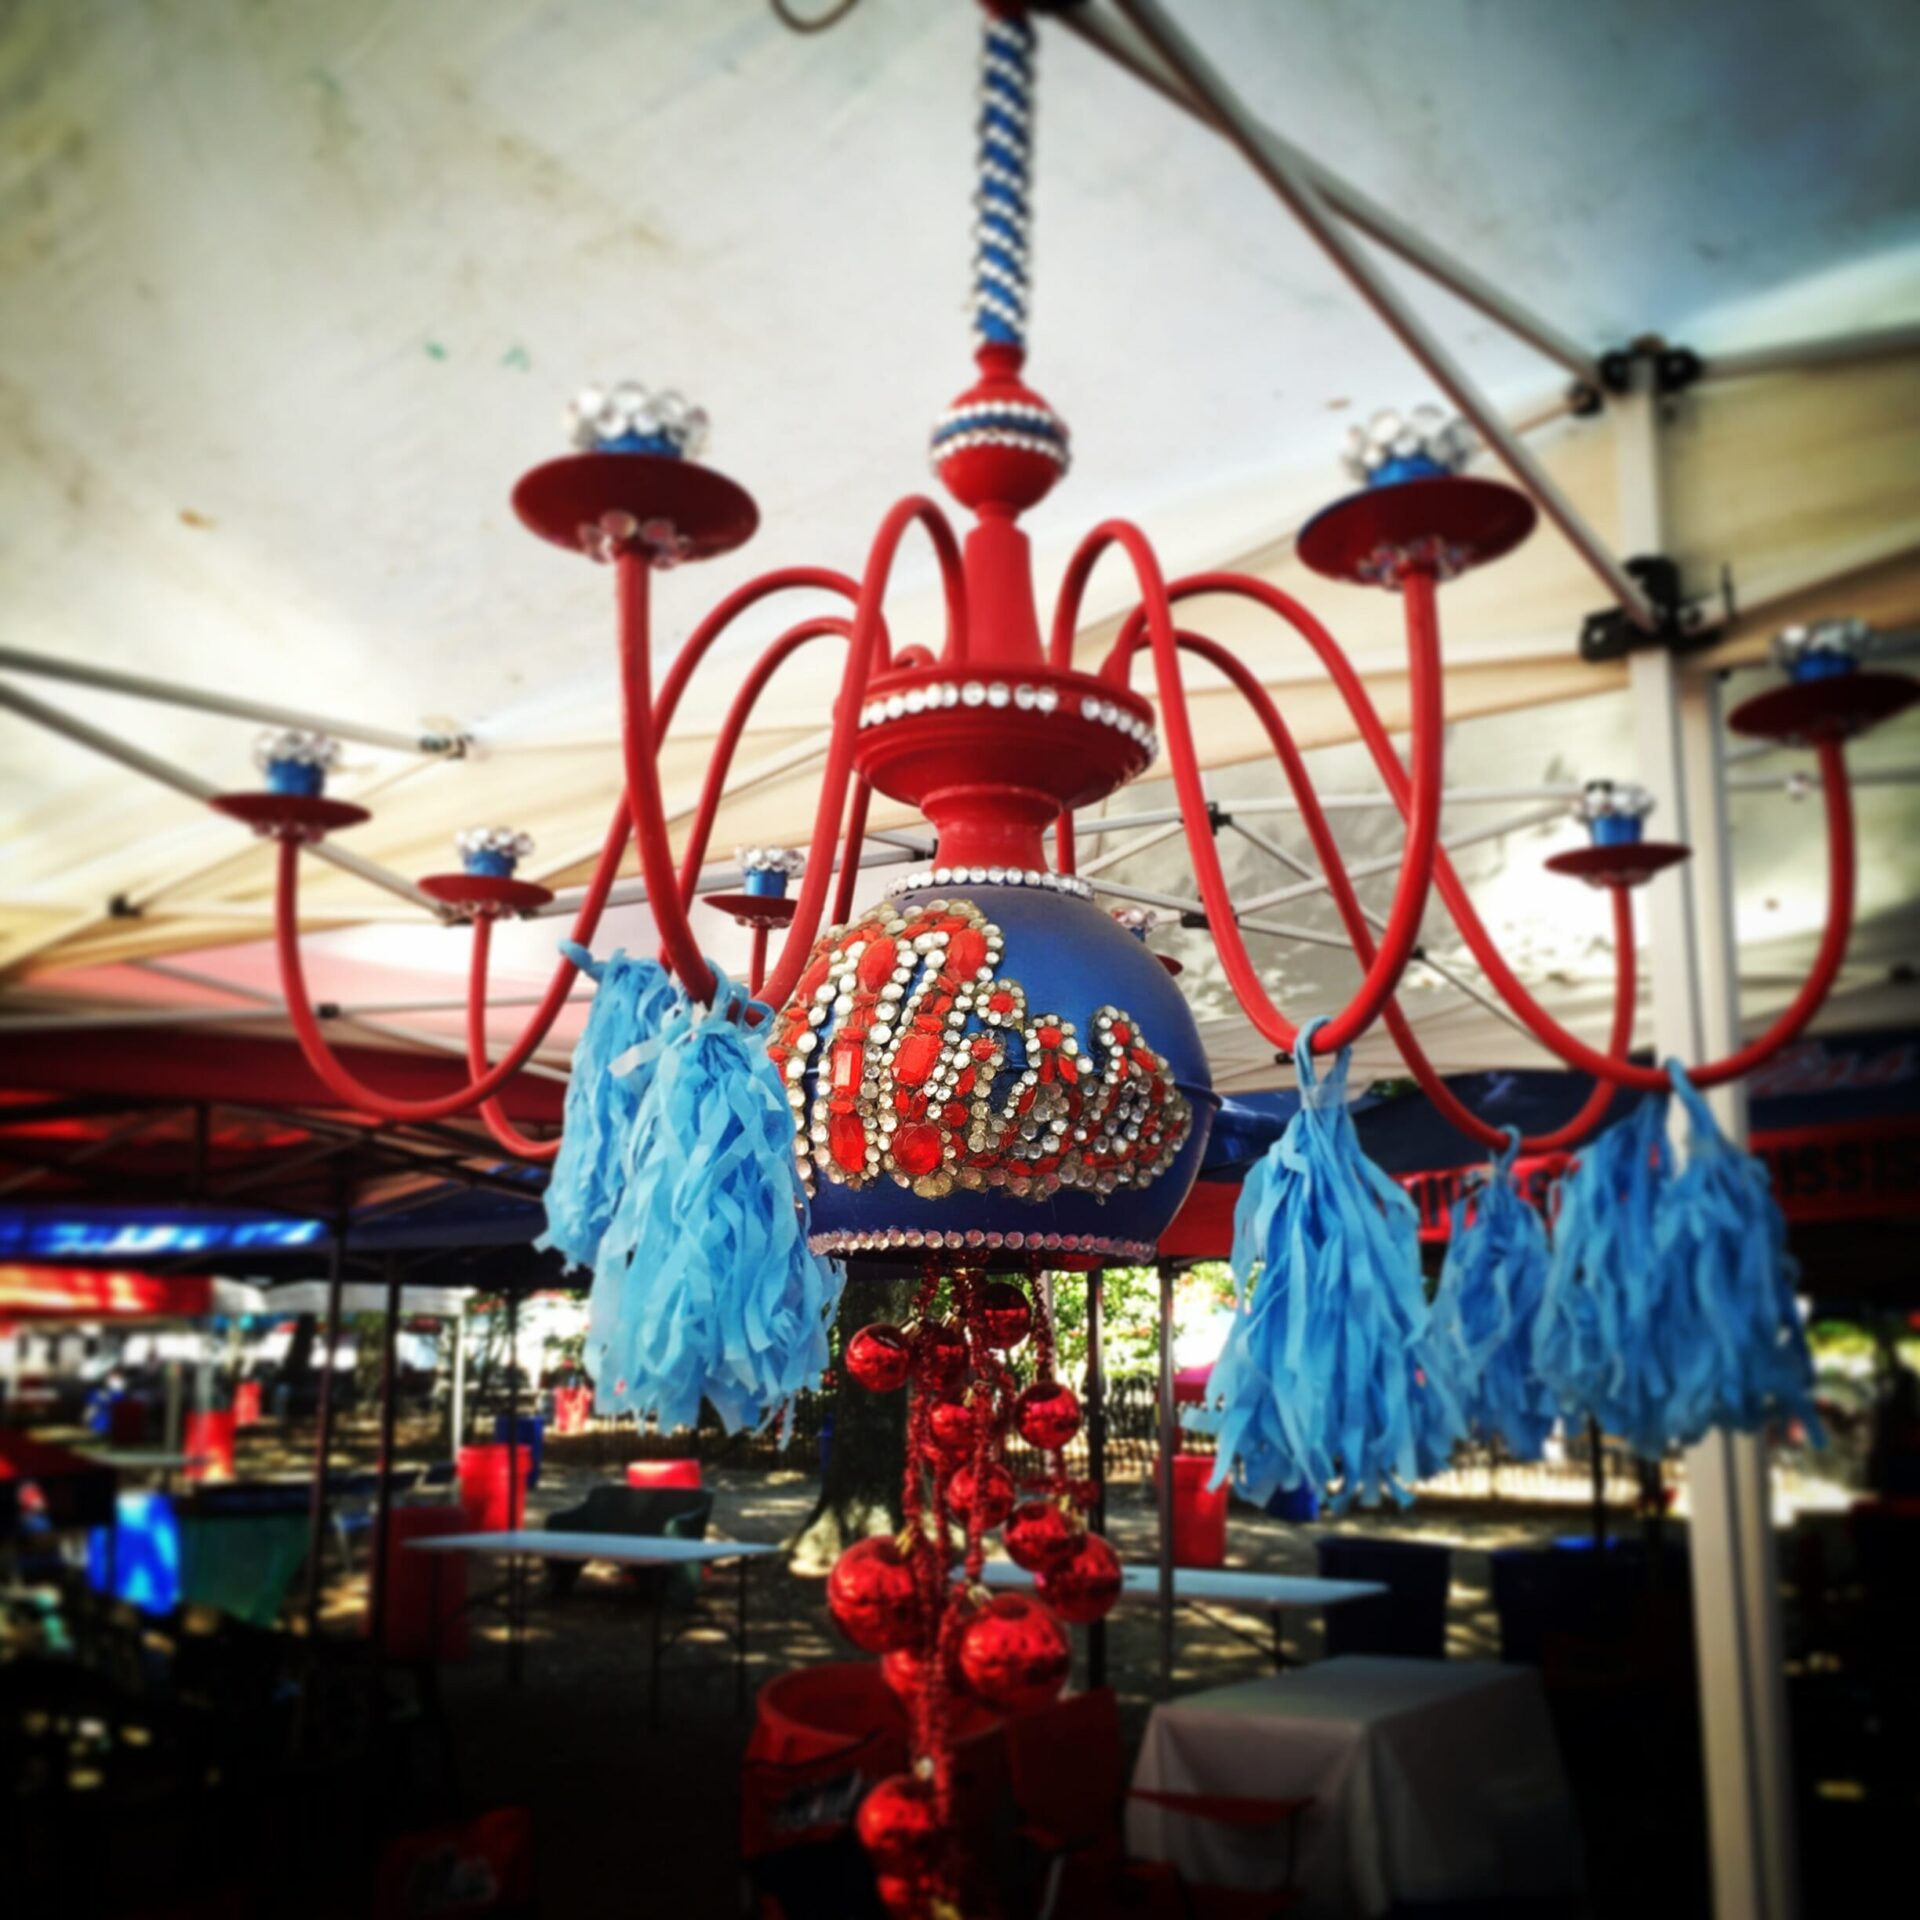 Are you ready take a chandelier tour of the grove hottytoddy take a chandelier tour of the grove hottytoddy arubaitofo Gallery